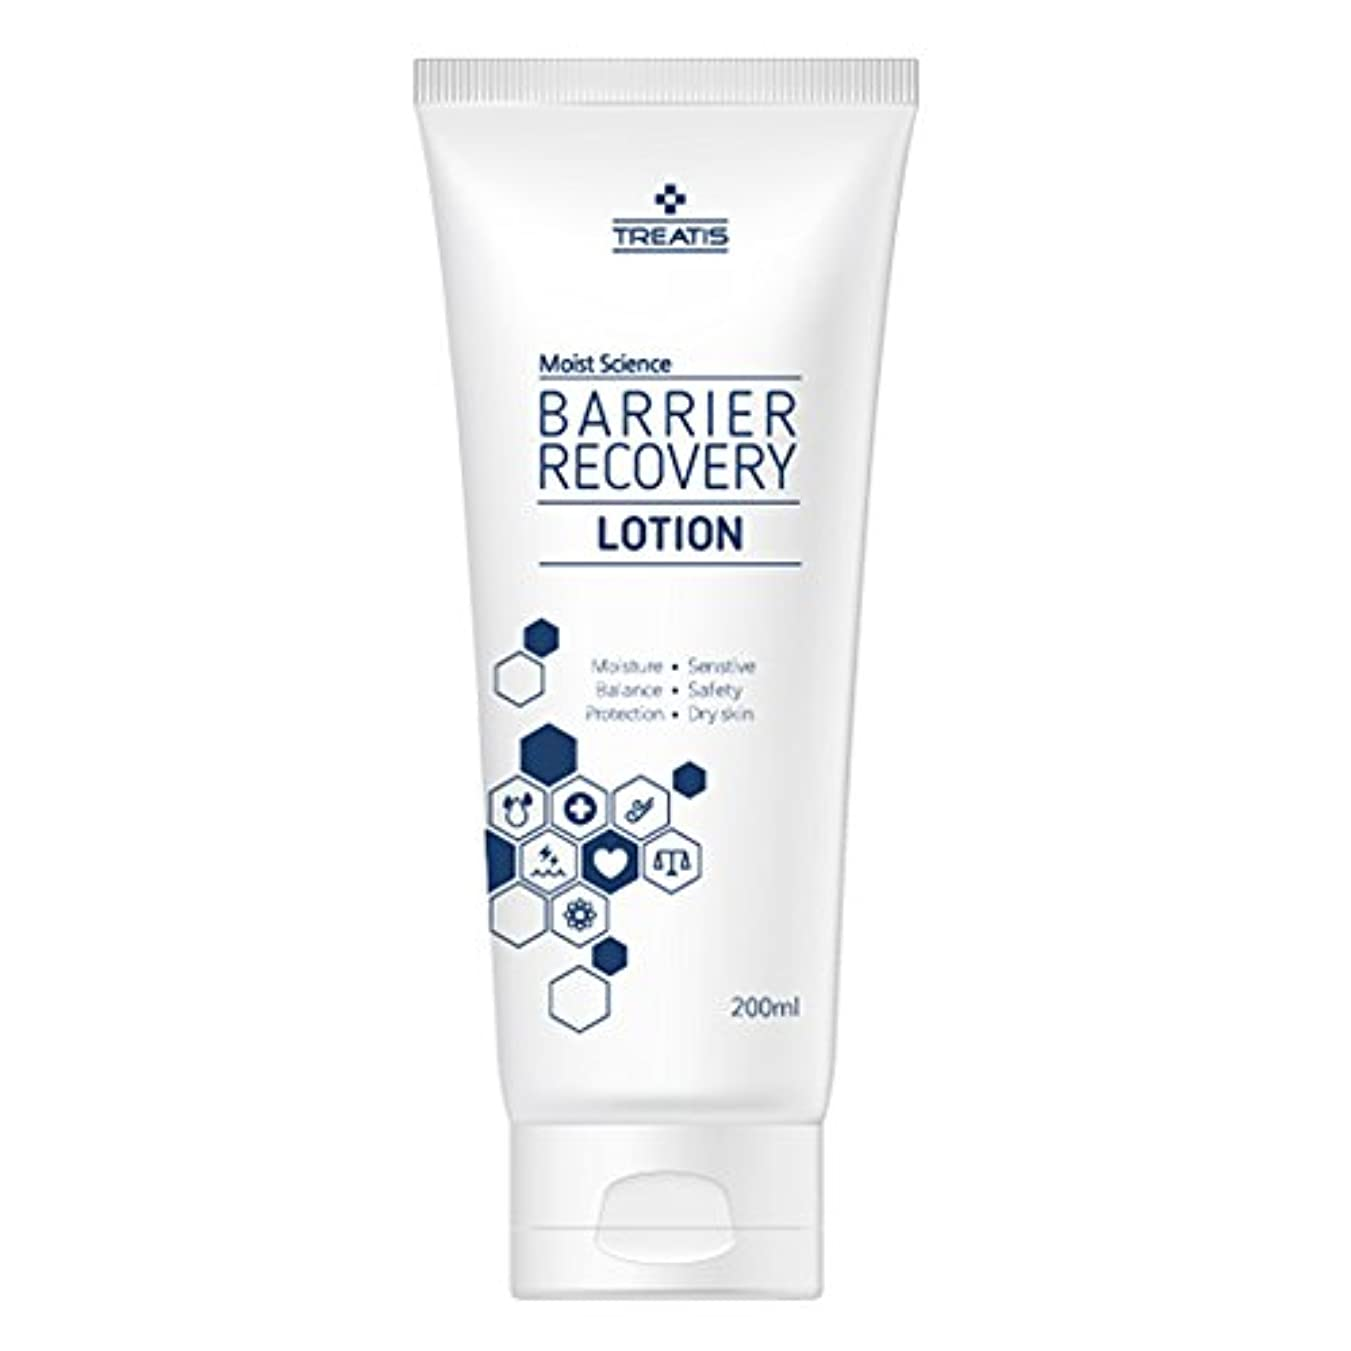 約設定伝えるブランドTreatis barrier recovery lotion 7oz (200ml)/Moisture, Senstive, Balance, Safty, Protection, Dry skin [並行輸入品]